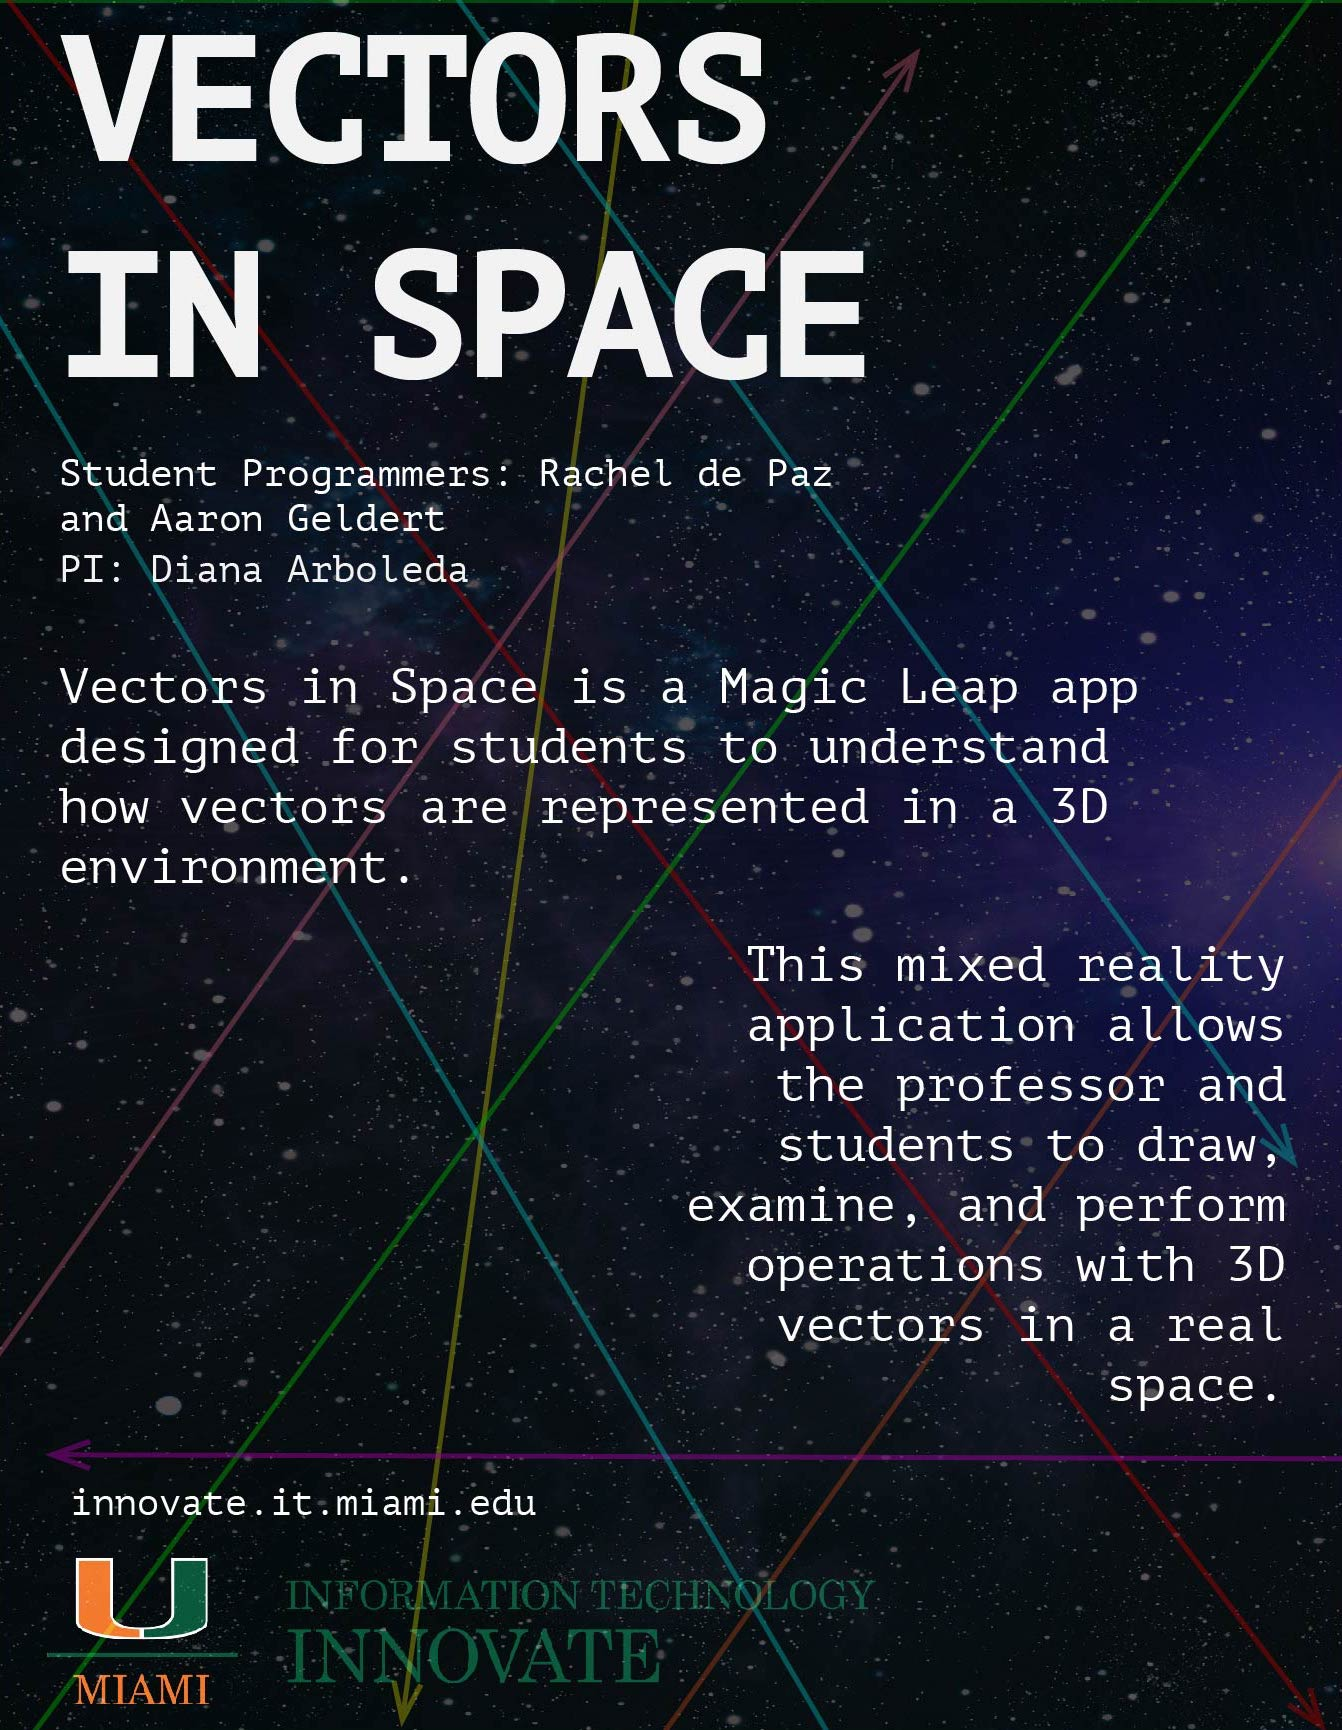 vectors in space, poster